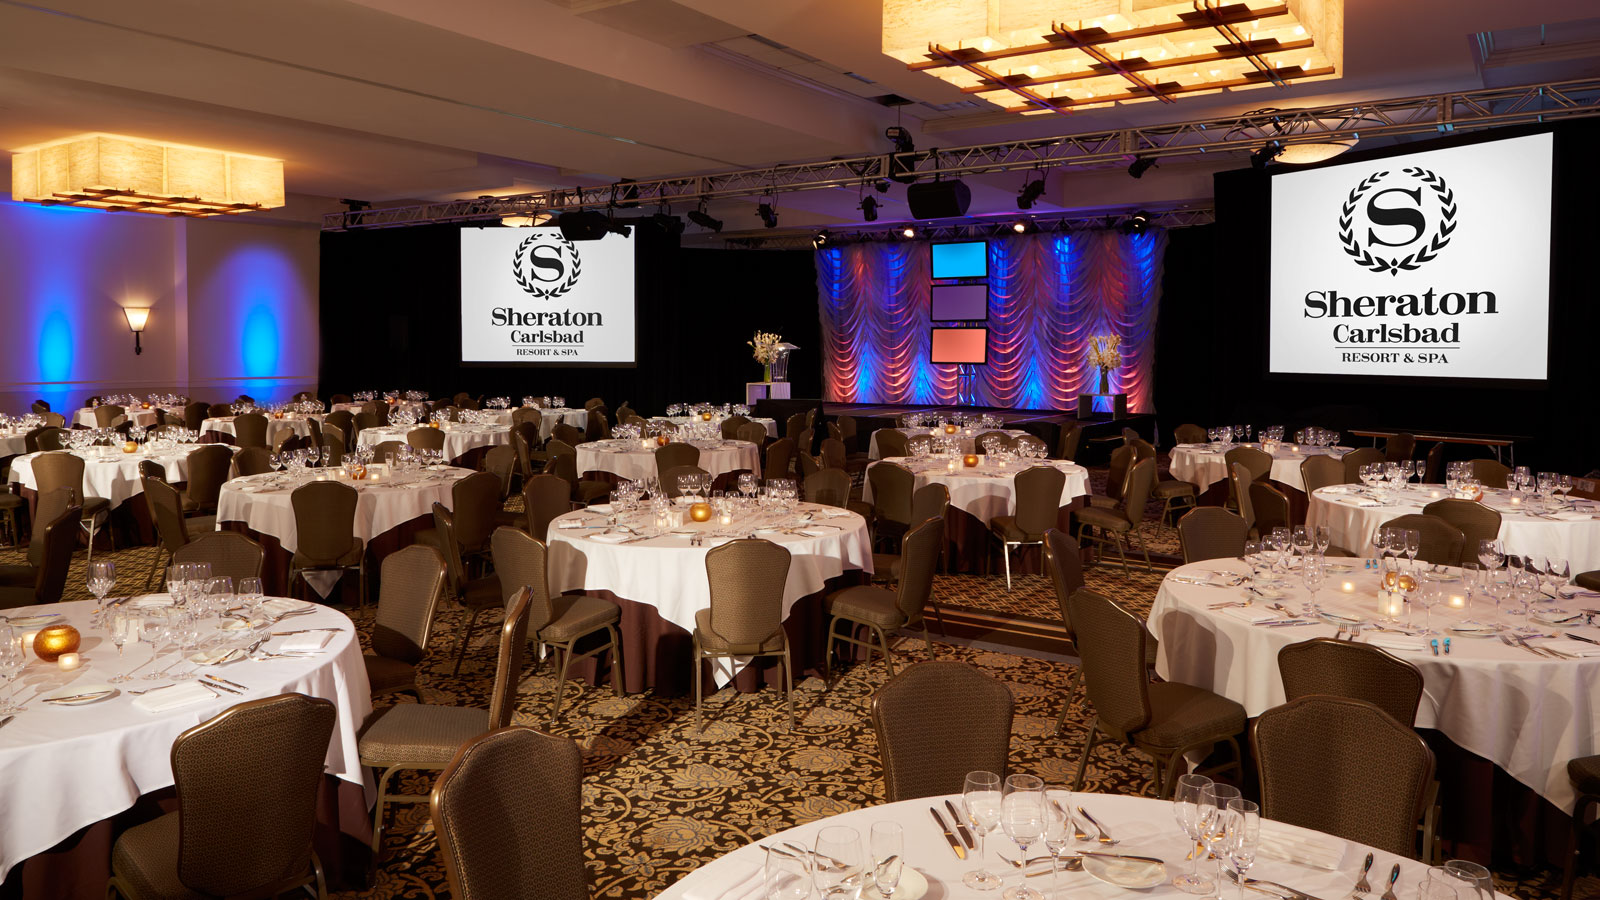 Sheraton Carlsbad Resort & Spa - San Diego Meeting Space Ballroom